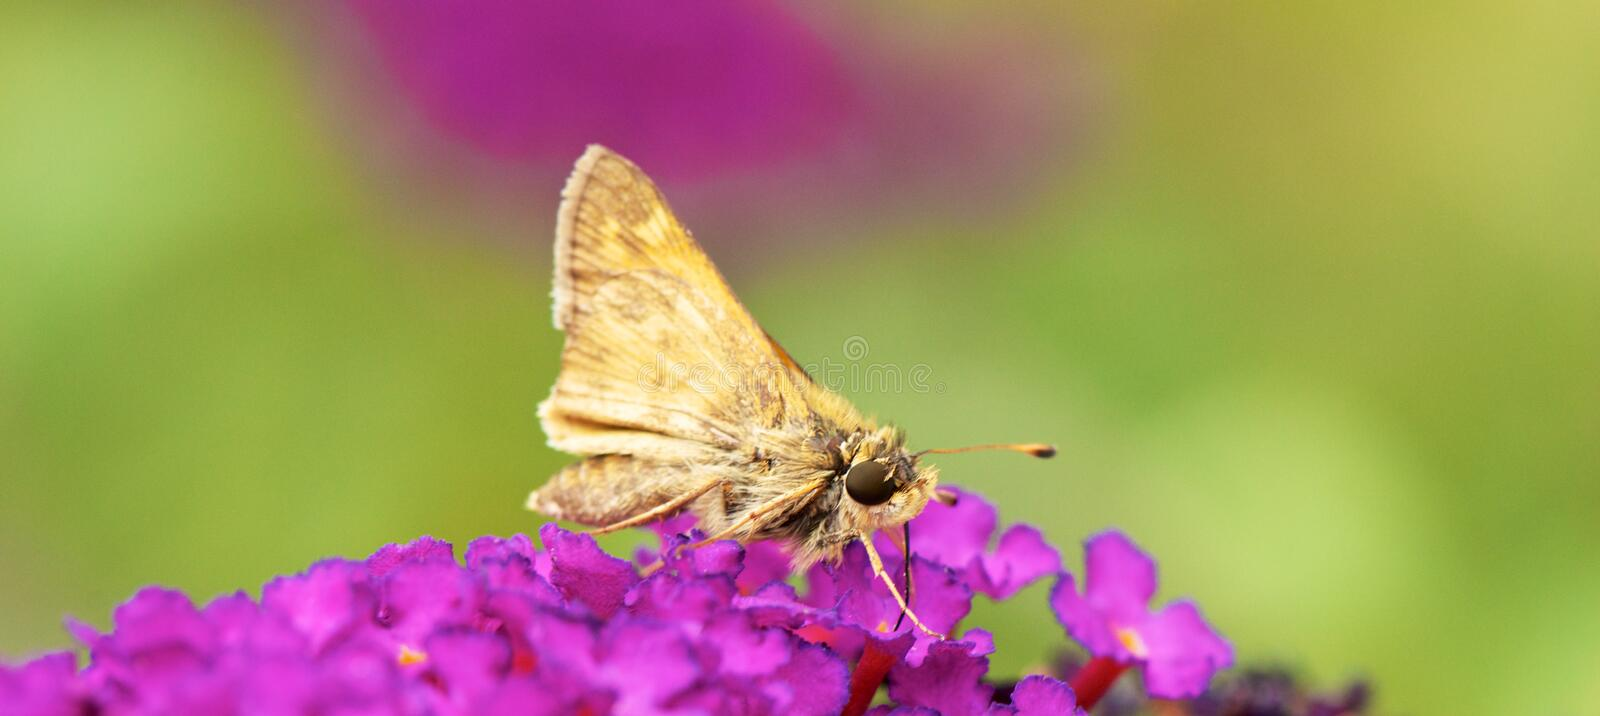 Download Skipper Butterfly stock image. Image of animal, beauty - 26559039